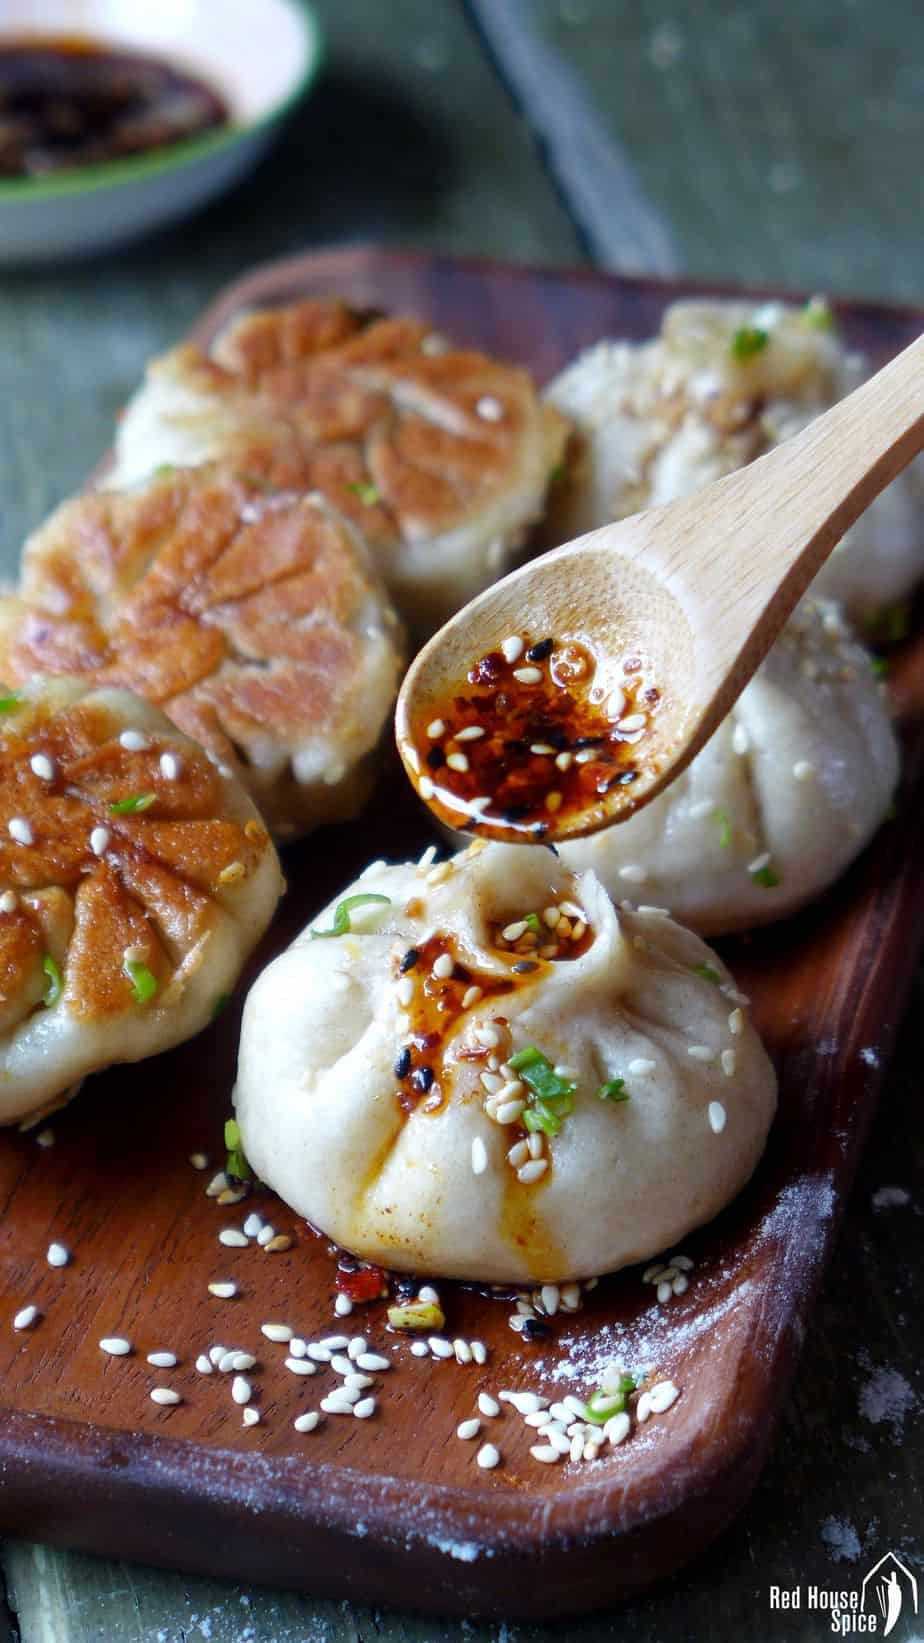 Six freshly cooked Sheng Jian Bao (生煎包, pan-fried pork buns) served with Chinese chilli oil.